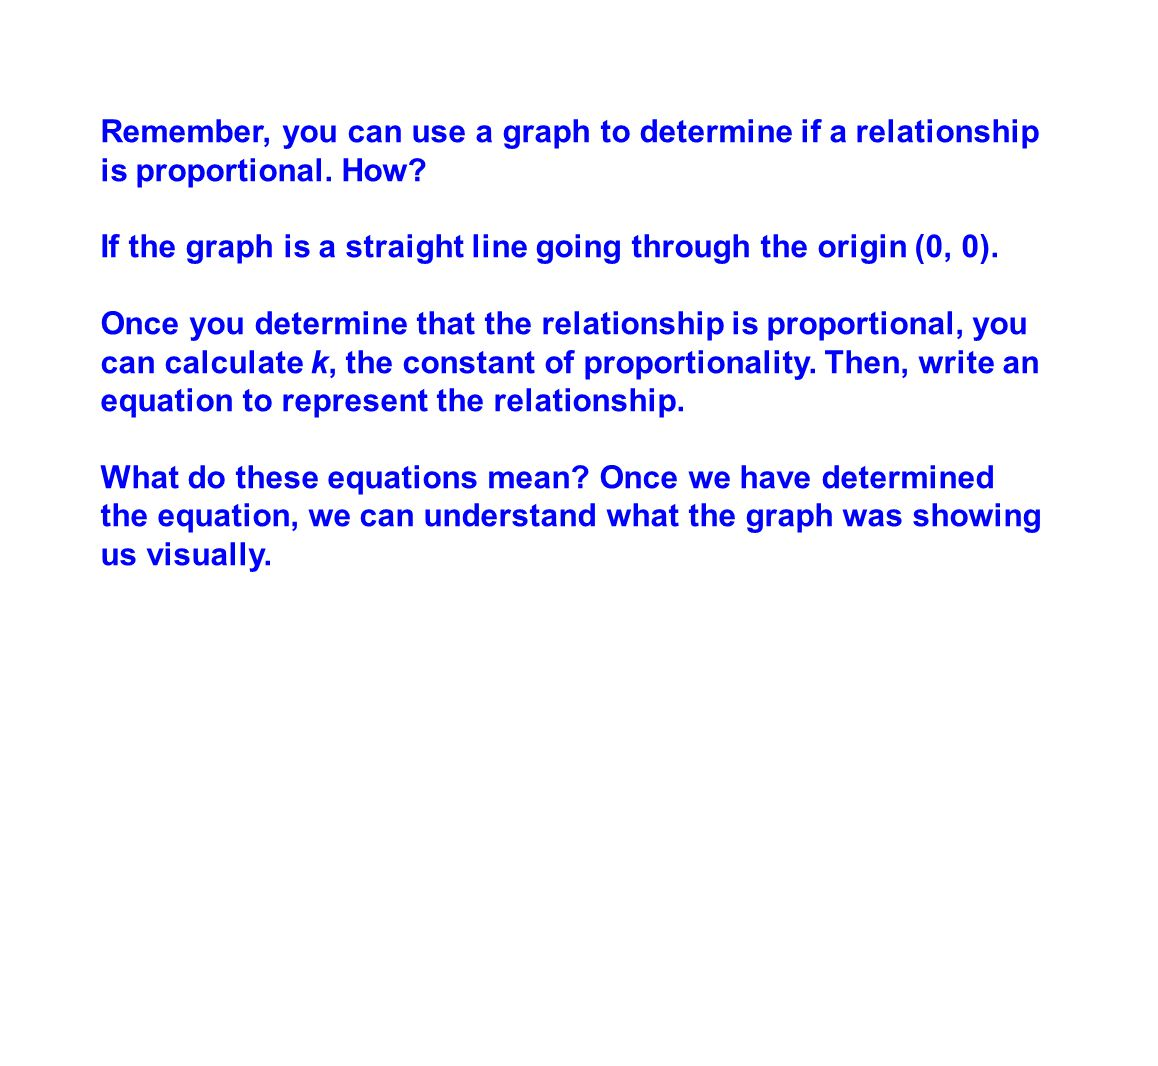 Remember, you can use a graph to determine if a relationship is proportional. How